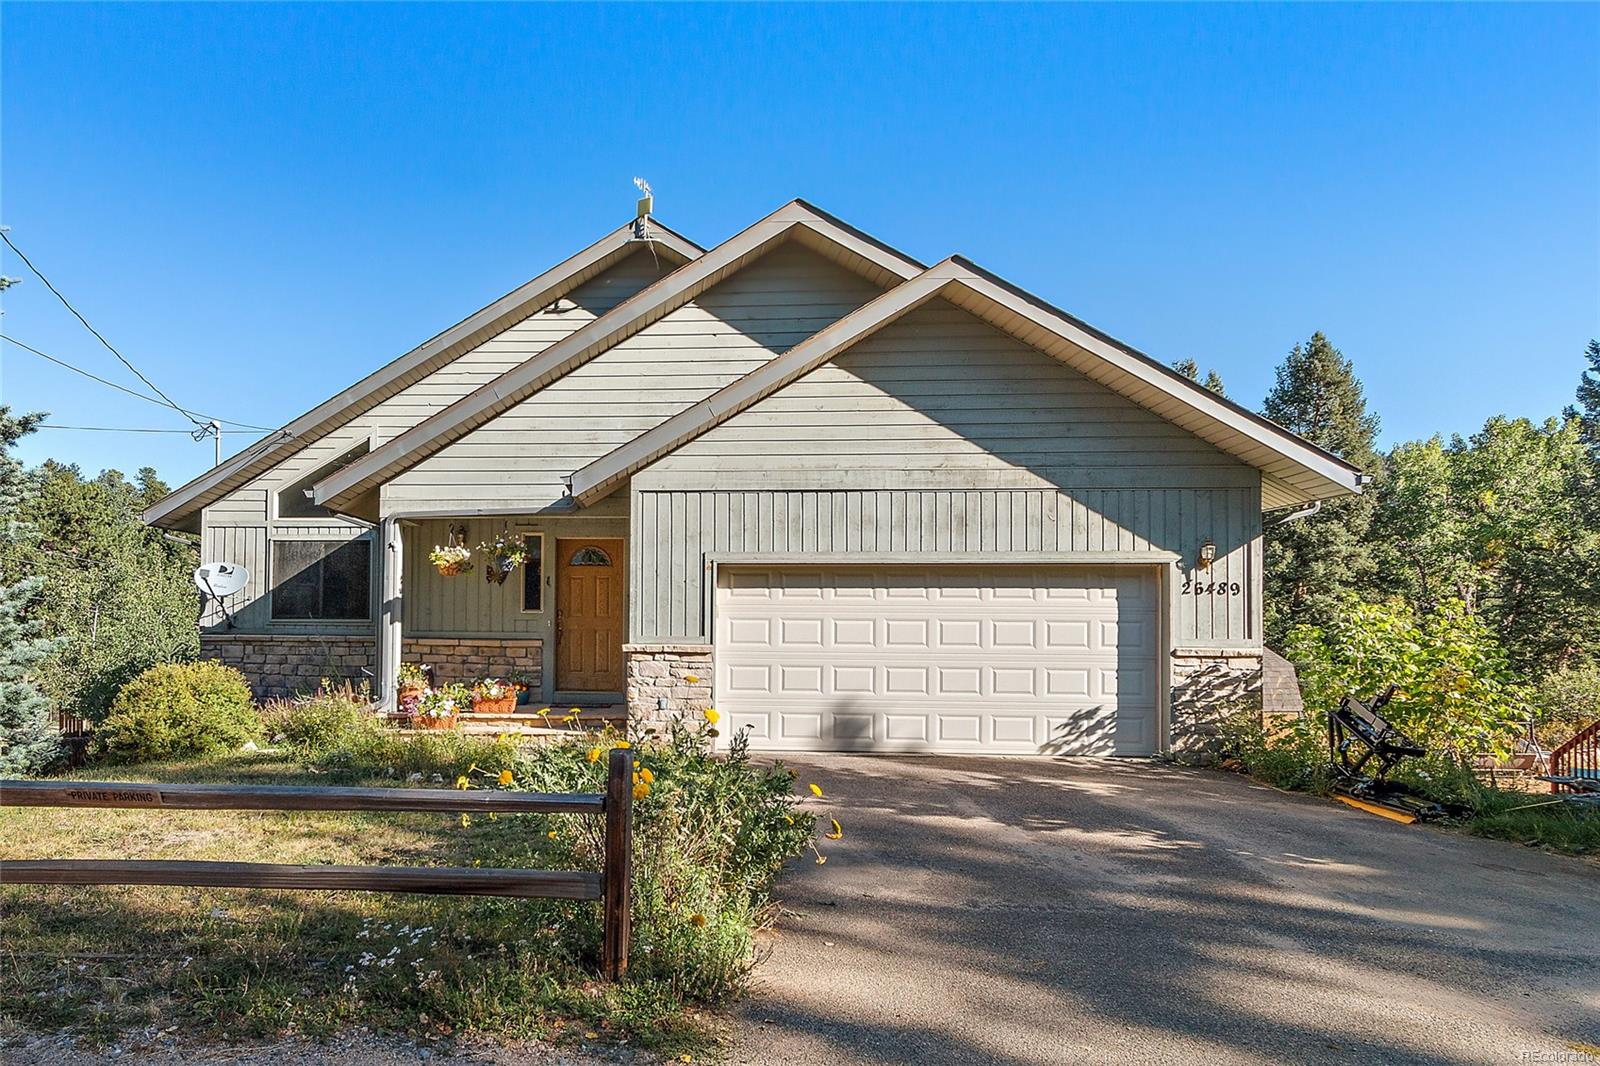 26489 Mowbray Court, Kittredge, CO 80457 - Kittredge, CO real estate listing